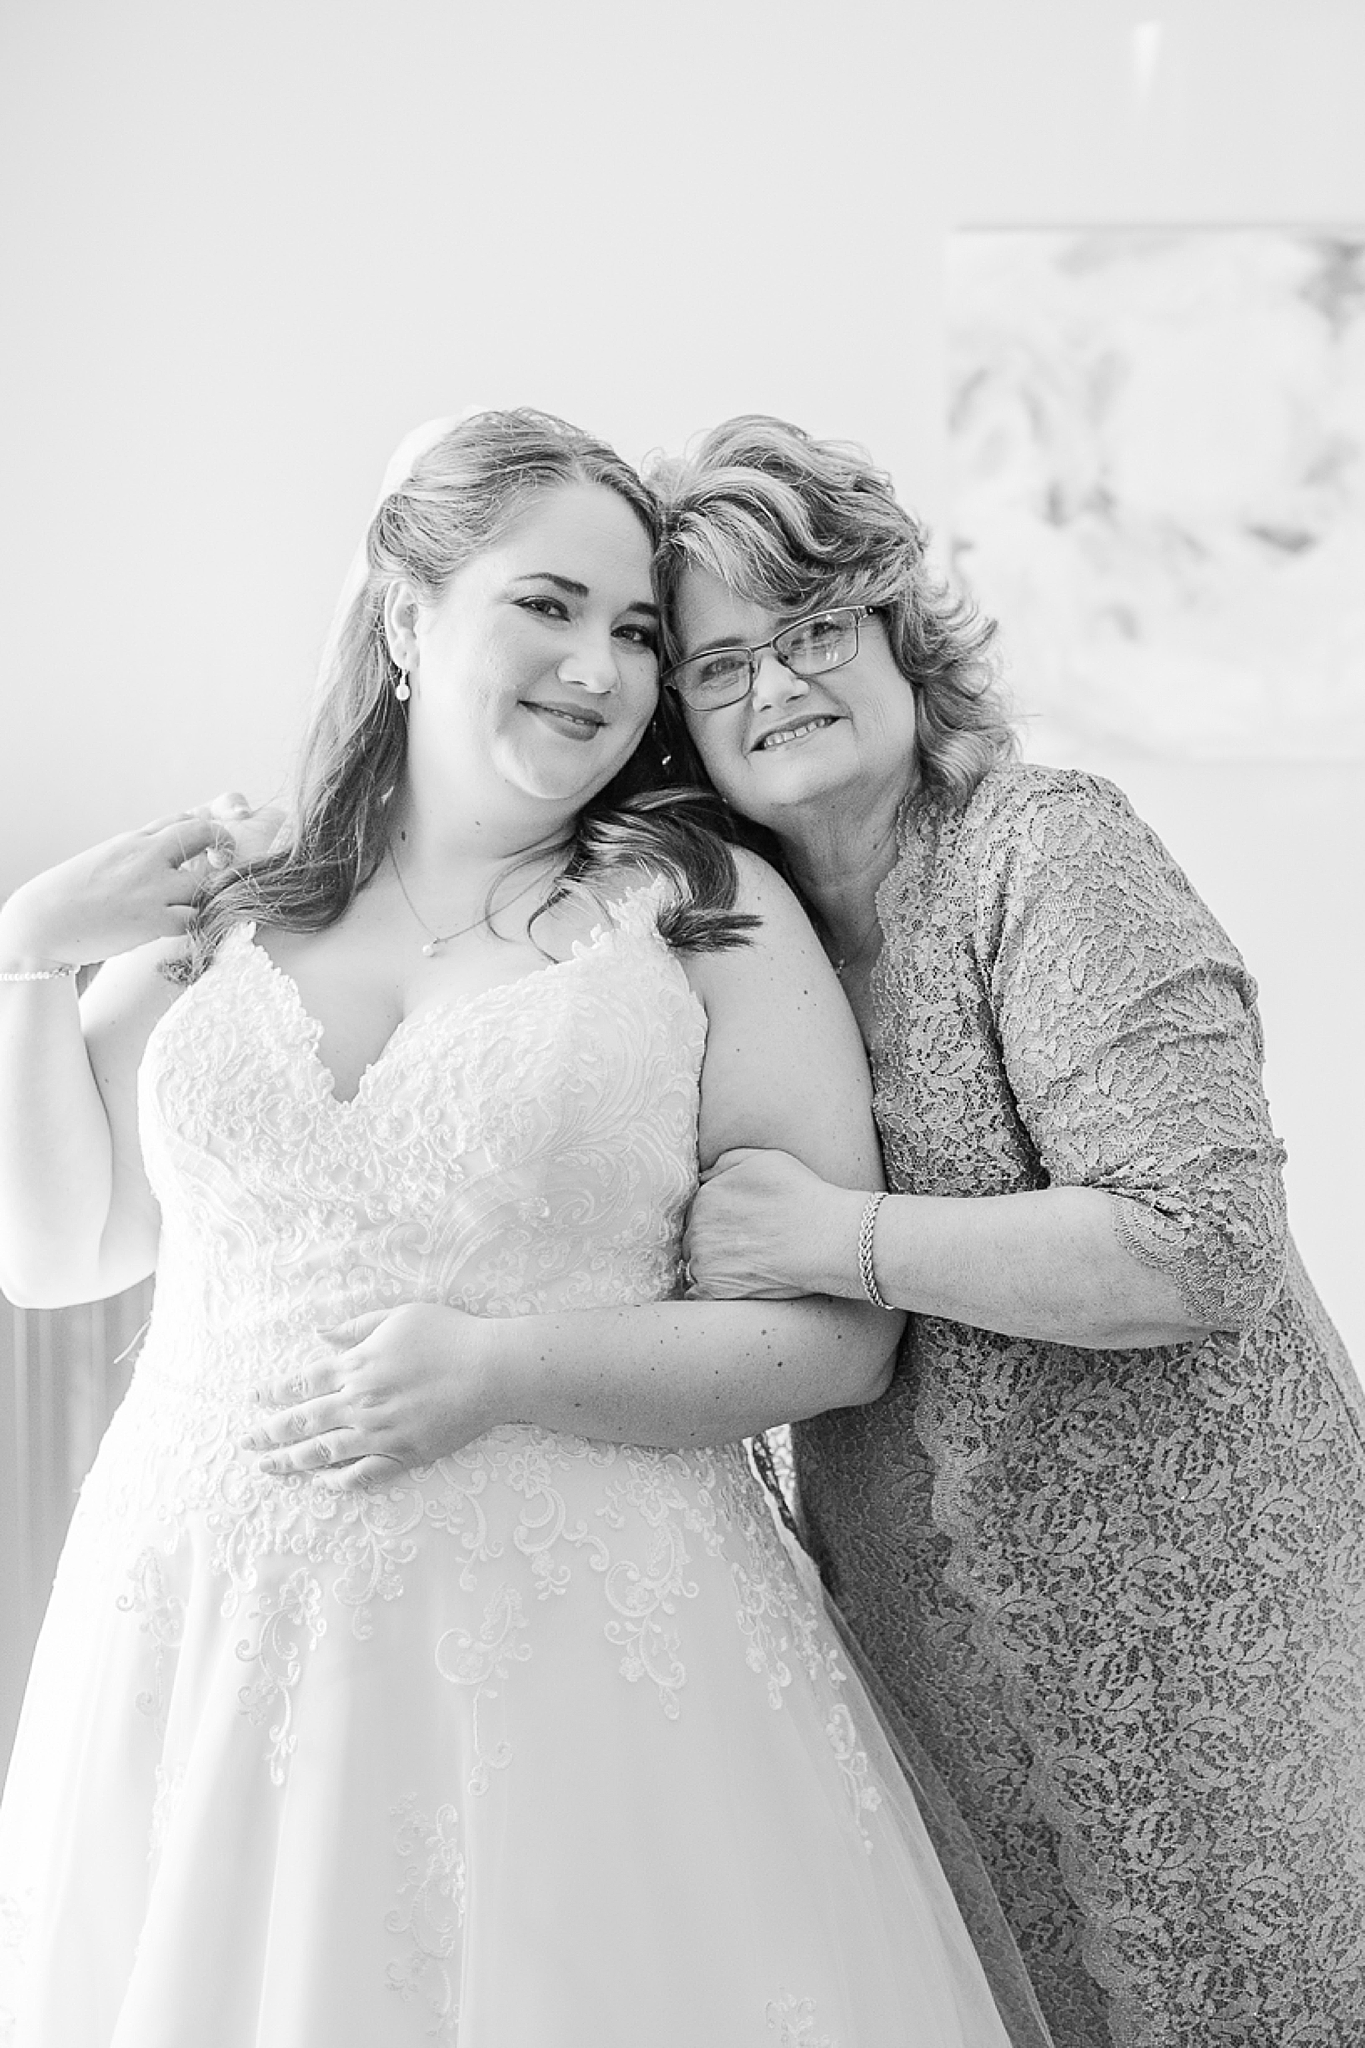 mom and daughter pose together during wedding morning